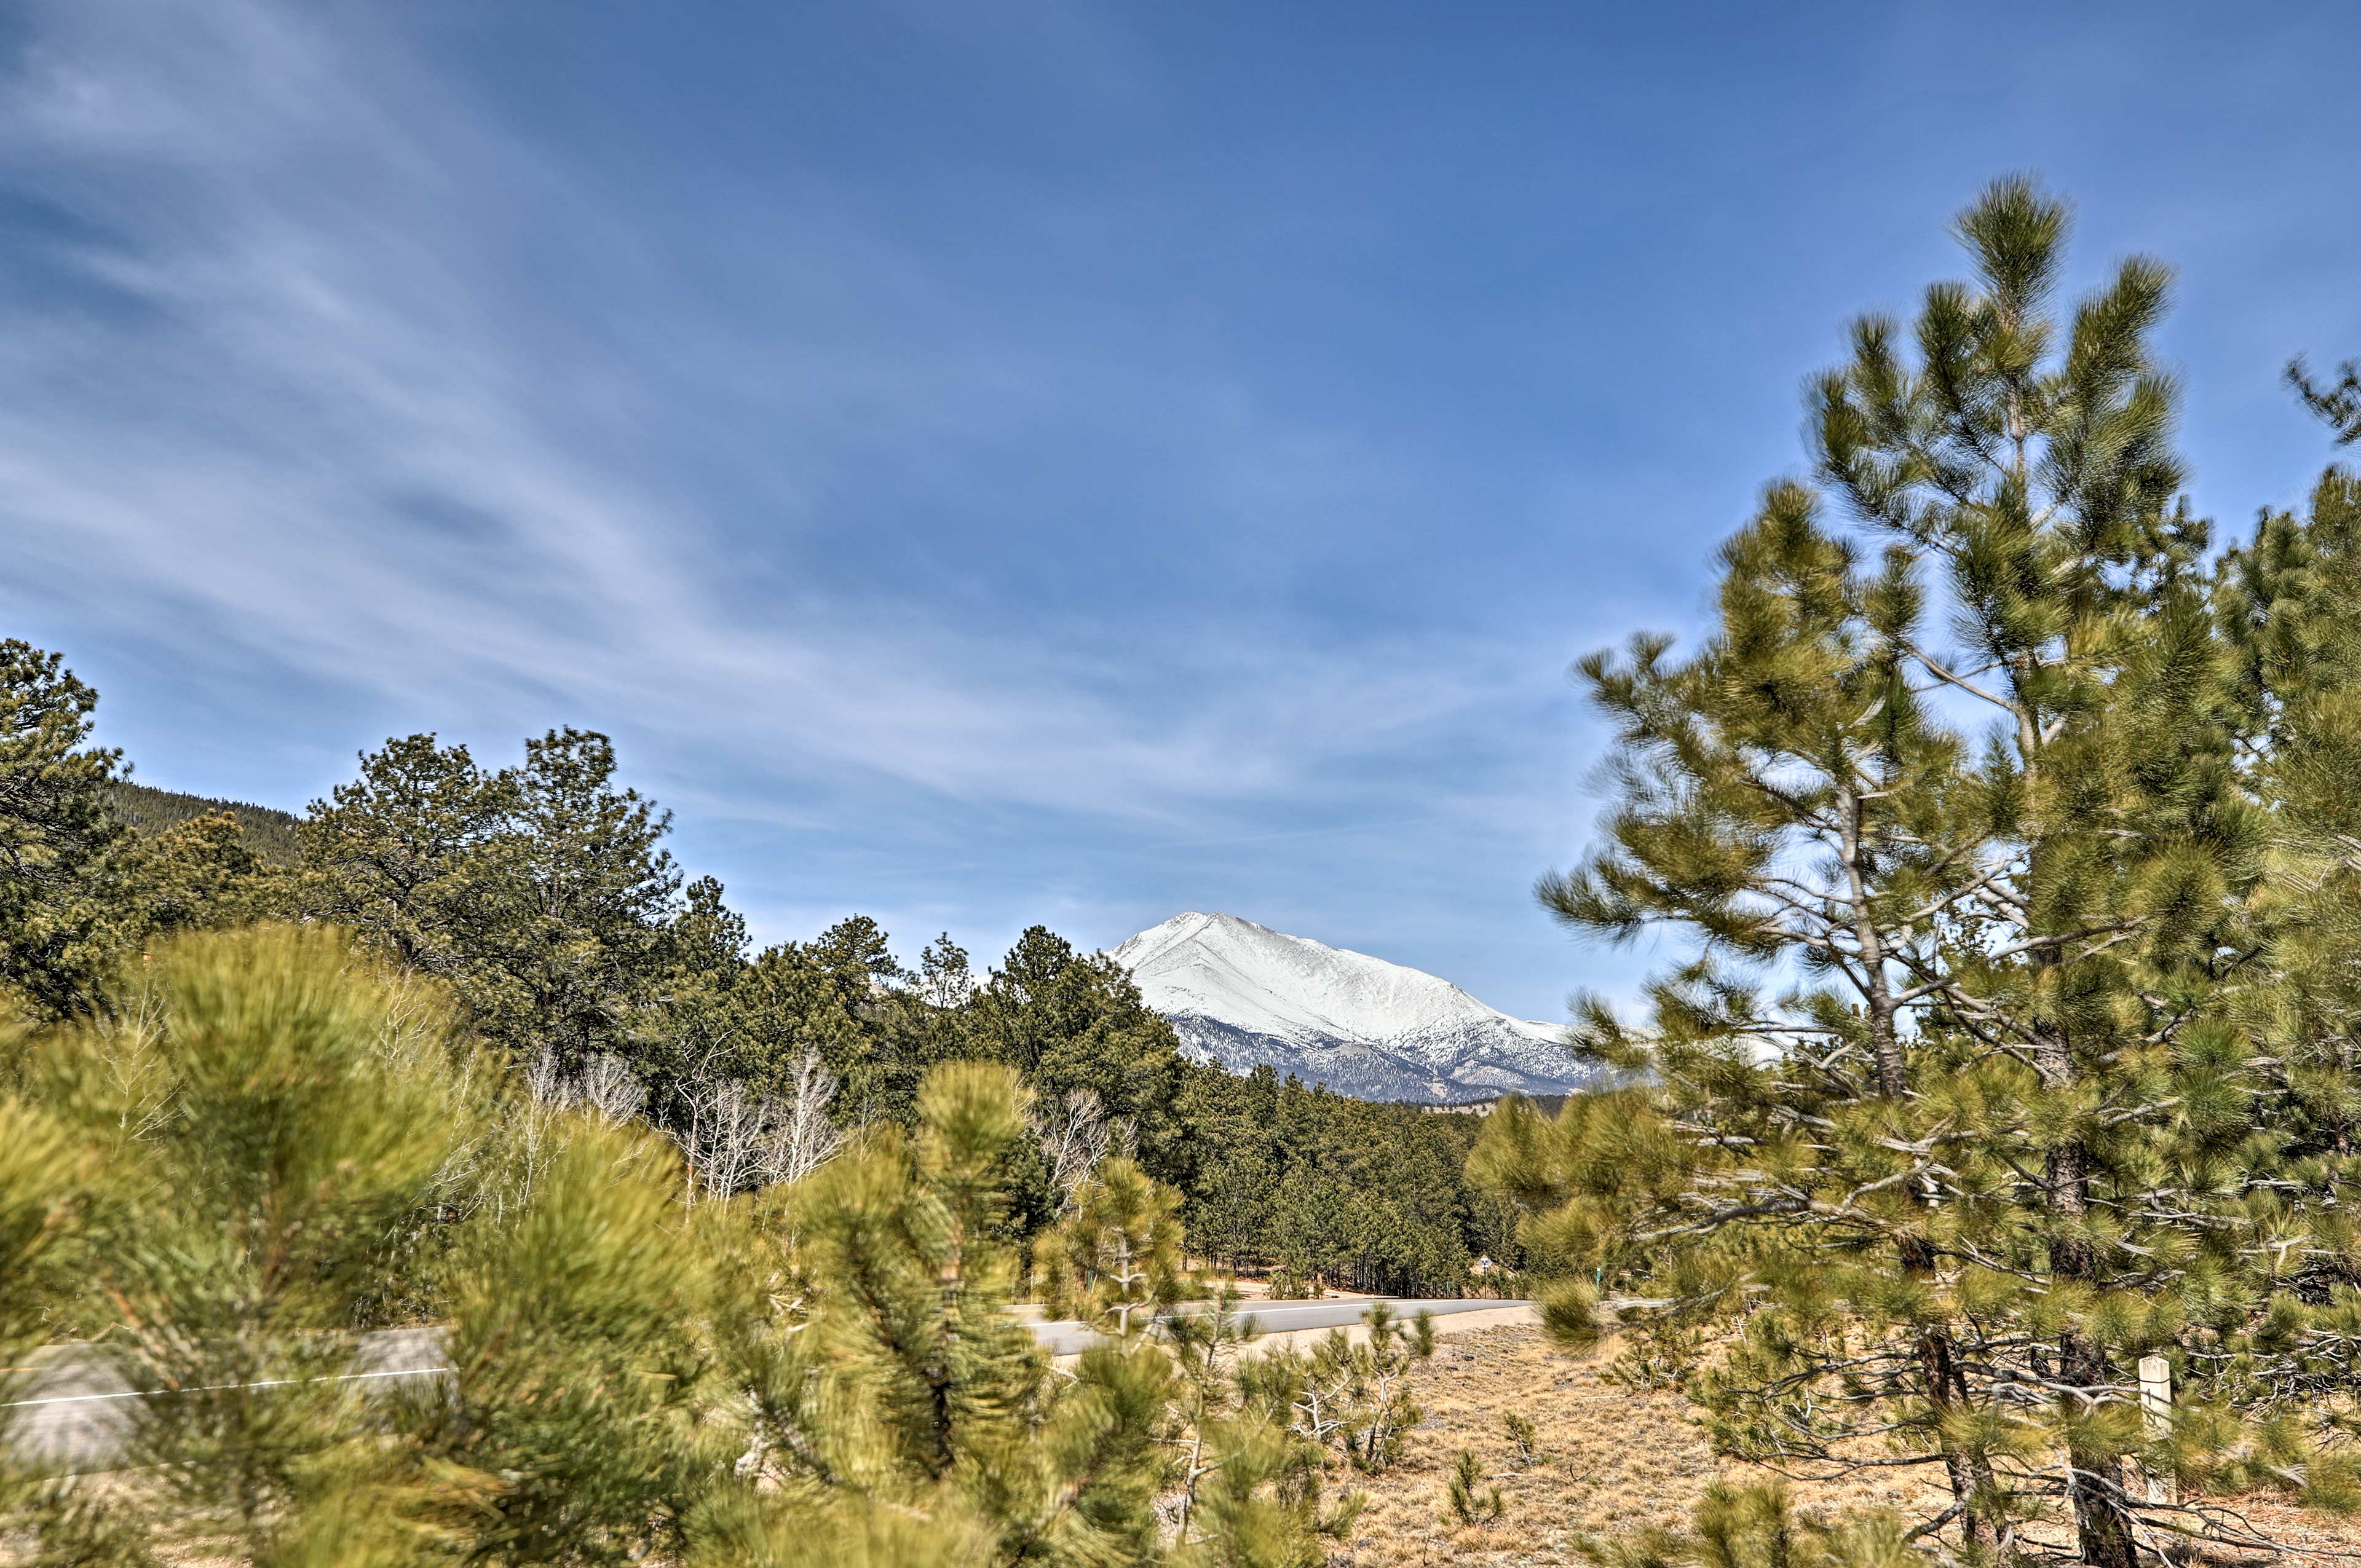 Wander the grounds to unveil majestic mountain views!